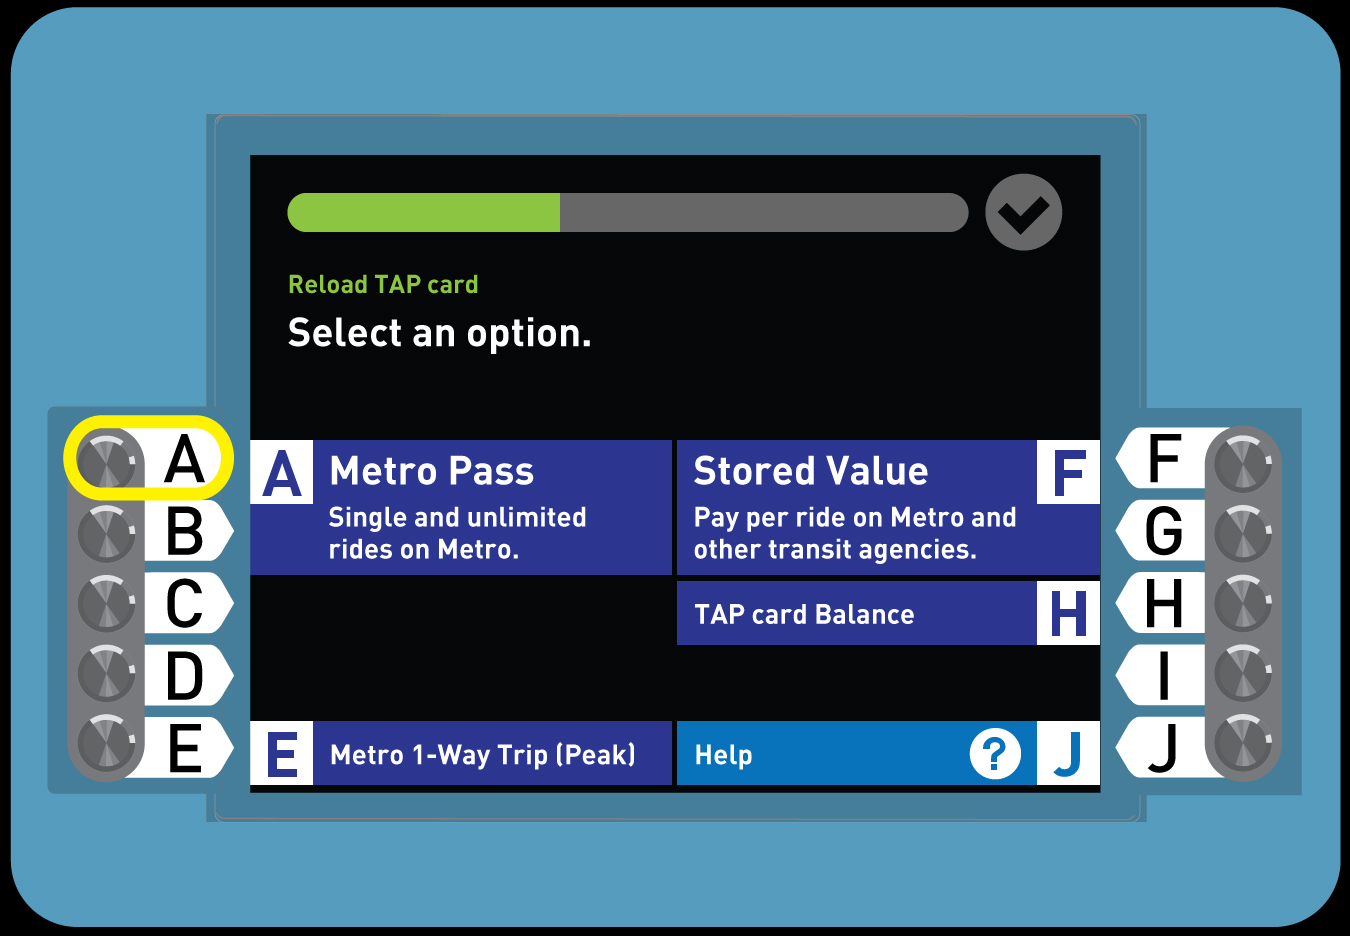 4. How to Load Senior TAP card with 1-Way Fare